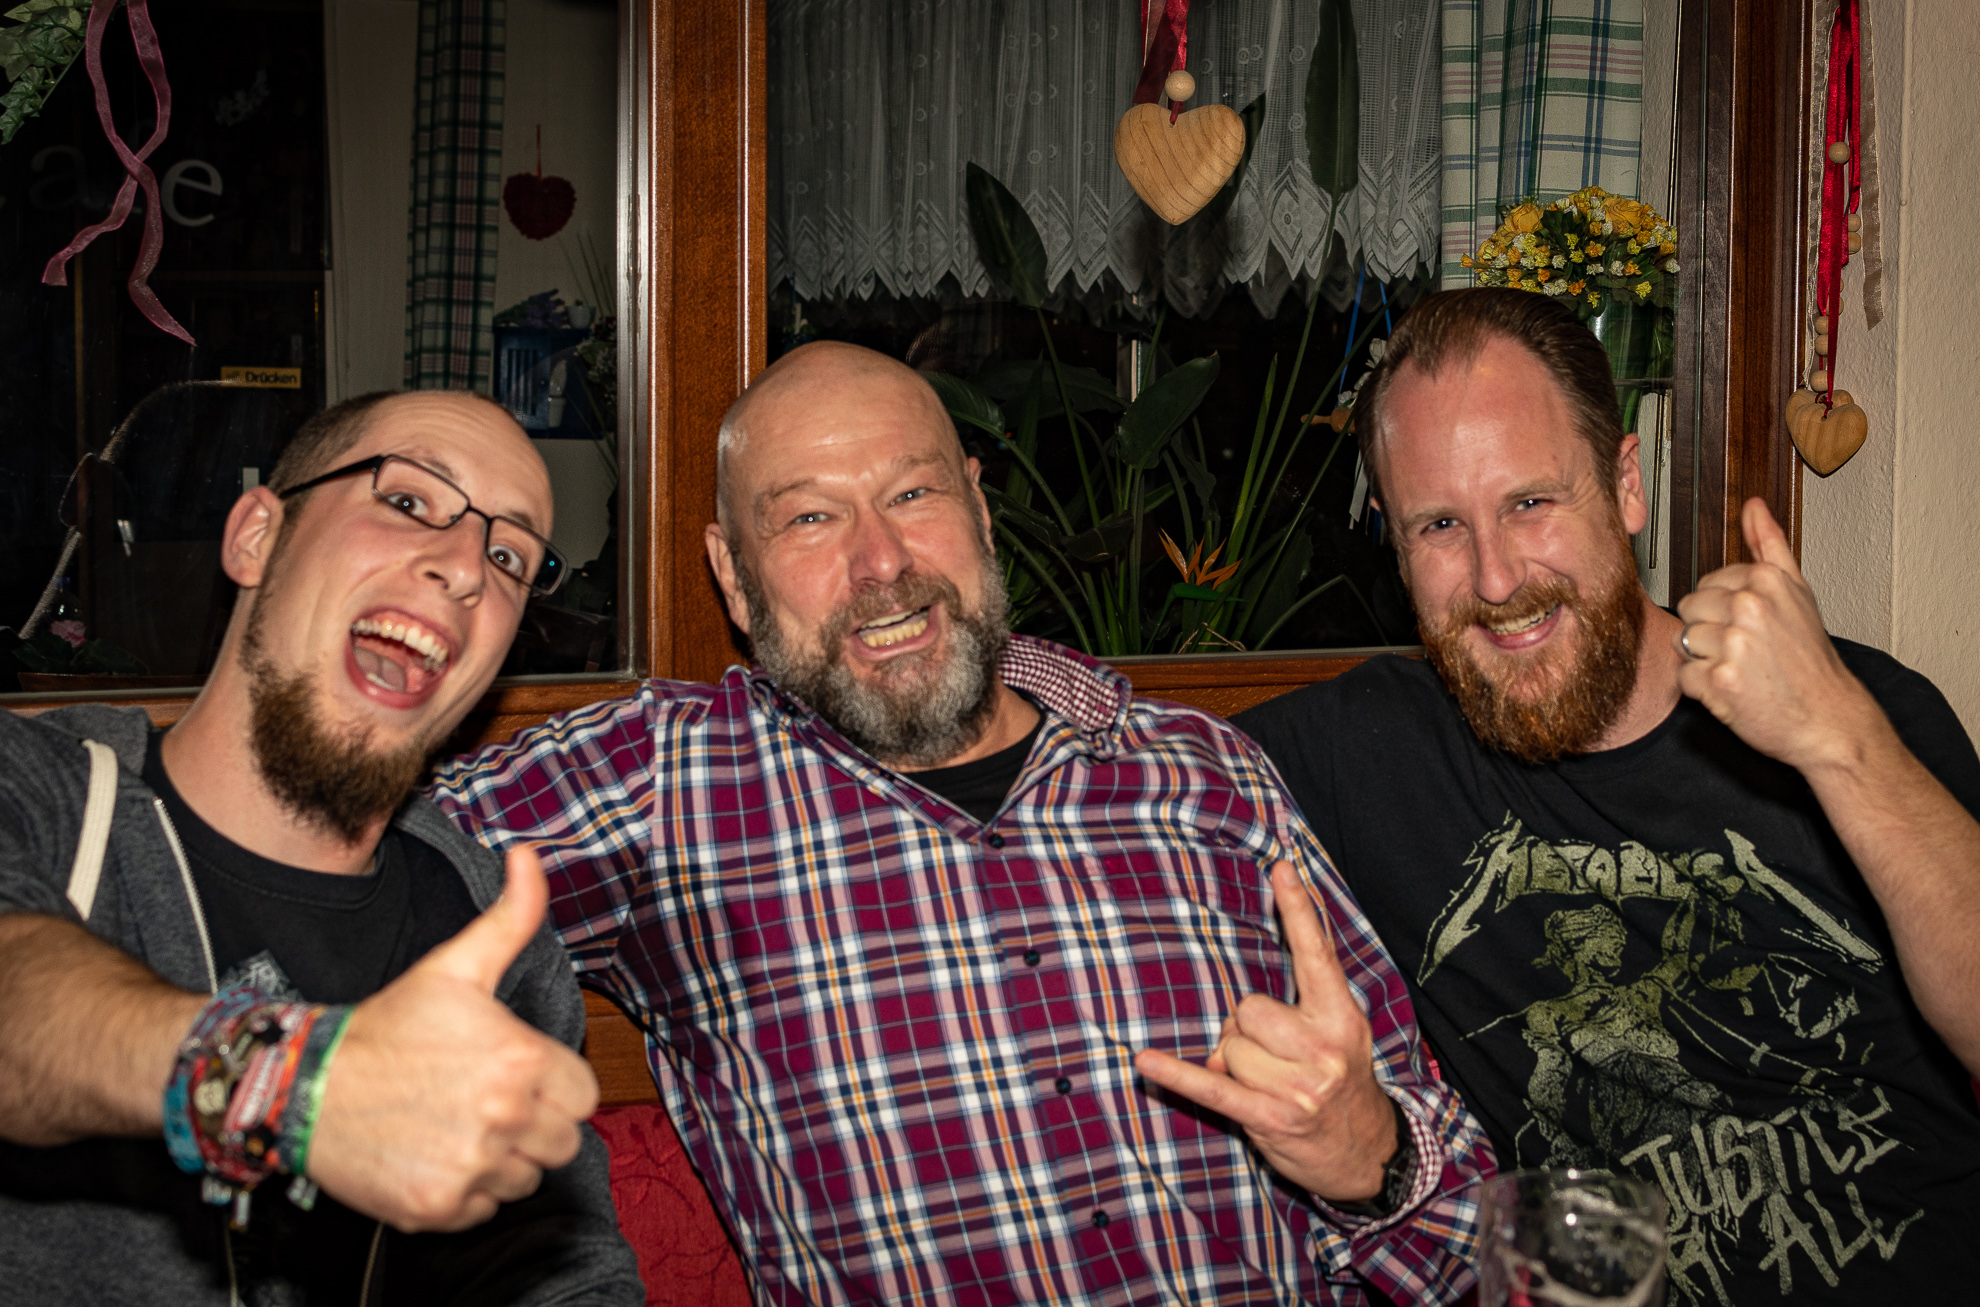 roland-im-interview-mit-dissorted-ueber-trash-metal-und-ihr-neues-album-the-final-divide